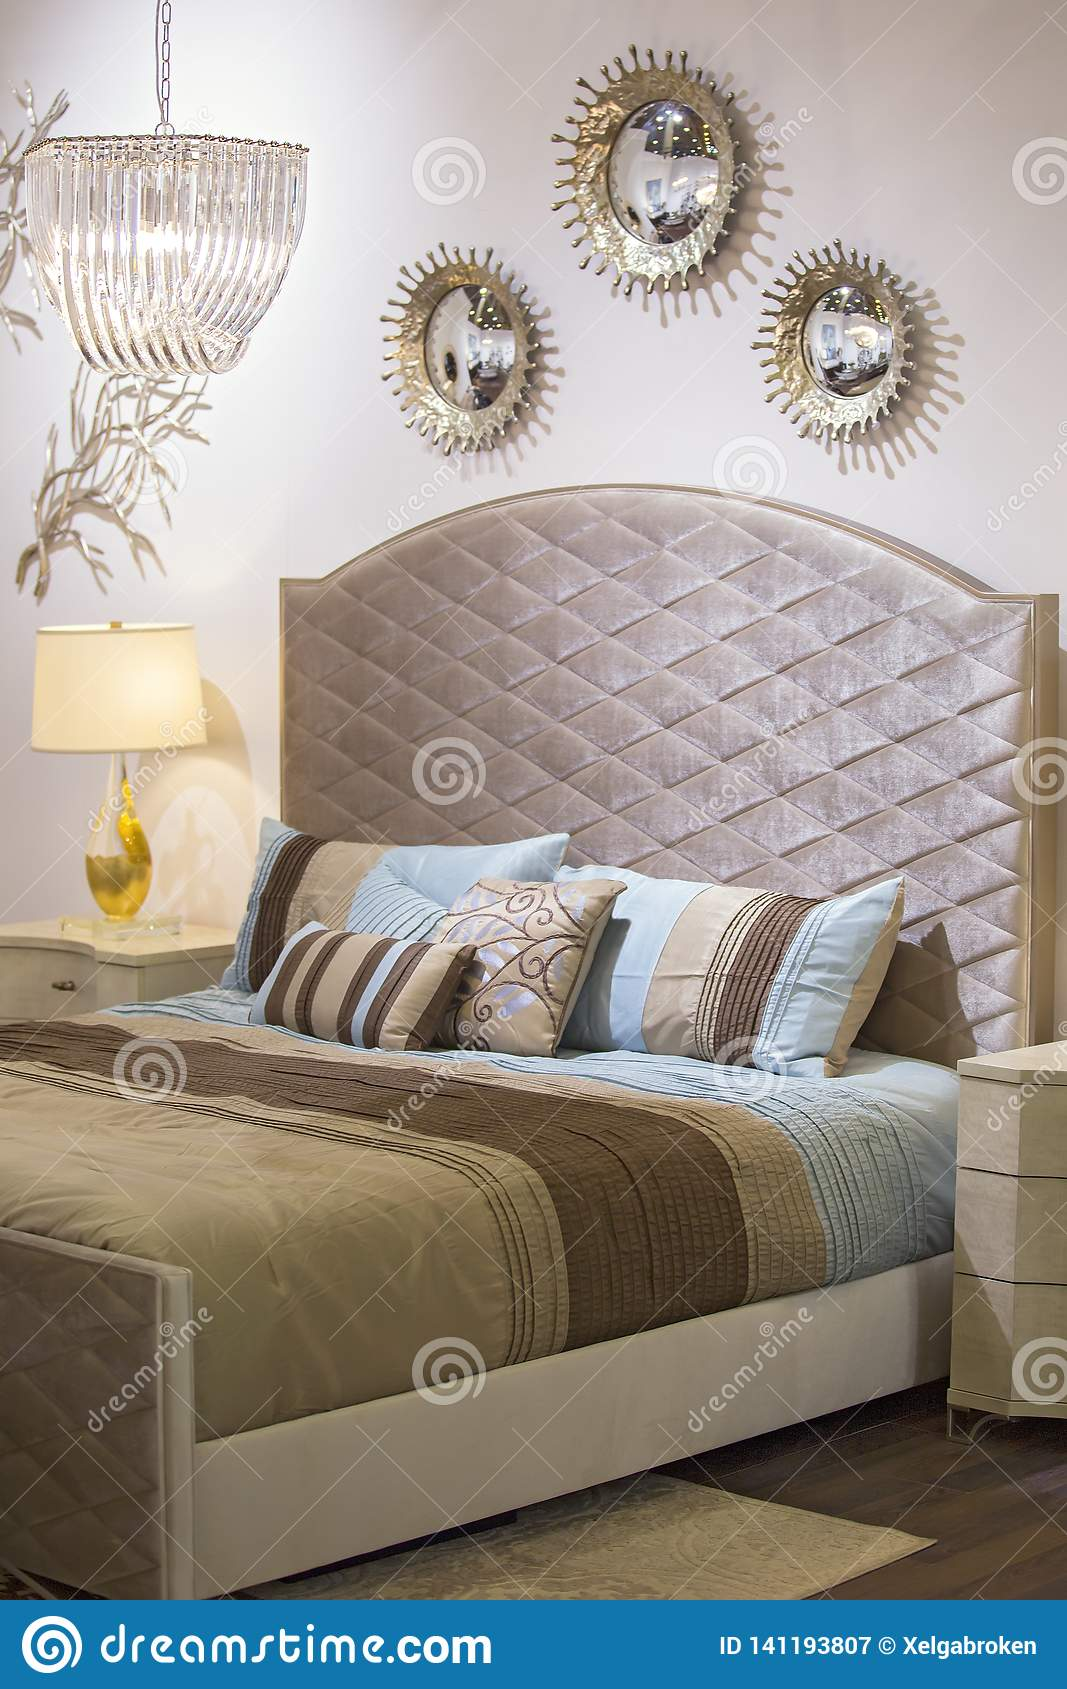 Picture of: Fashionable Modern Bedroom Bed Chandelier Mirrors On The Wall Bedside Table And Lamp Beautiful Textiles On The Bed Chic Stock Image Image Of Architecture Luxurious 141193807